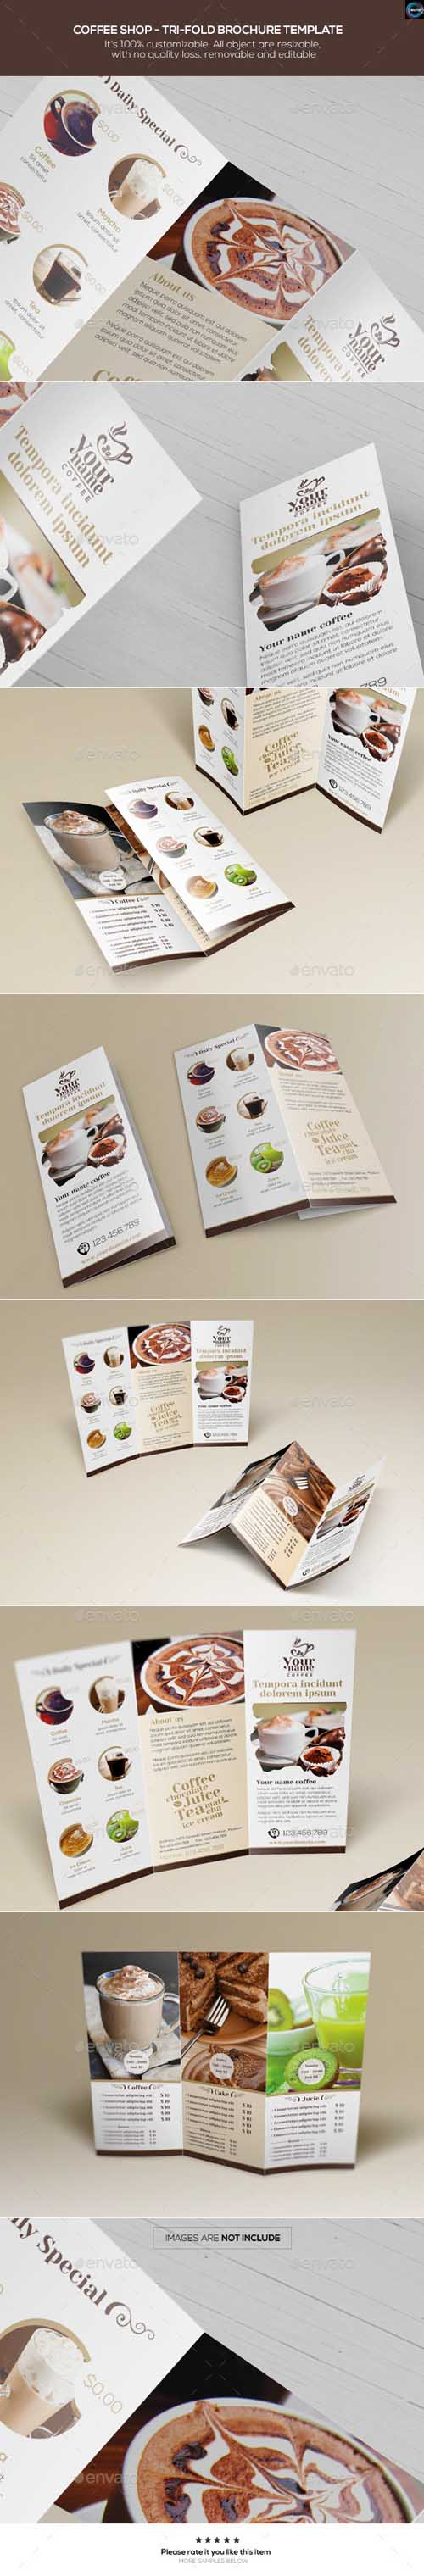 Coffee Shop - Trifold Brochure Template 12435787